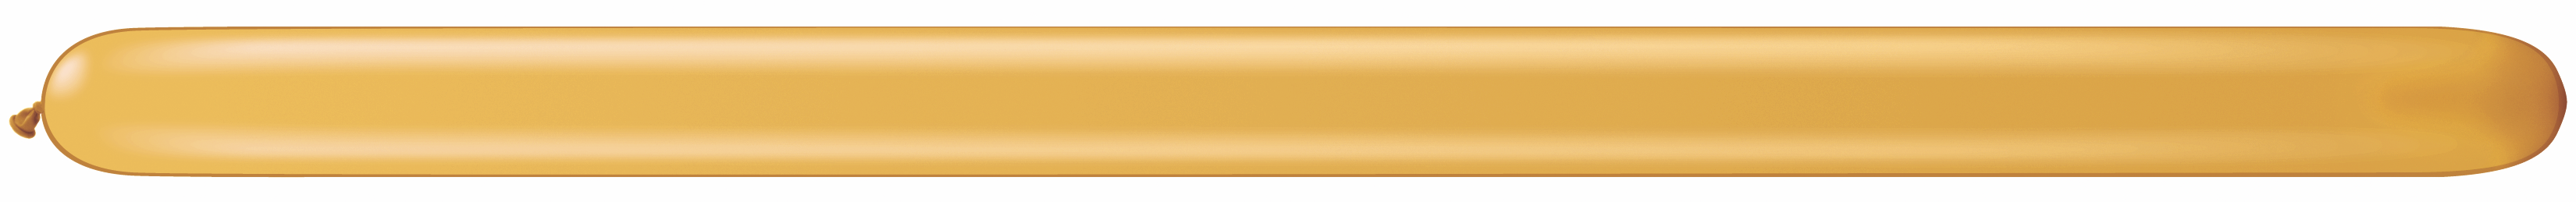 160Q Gold Specialty Entertainer Balloons (100 Count)